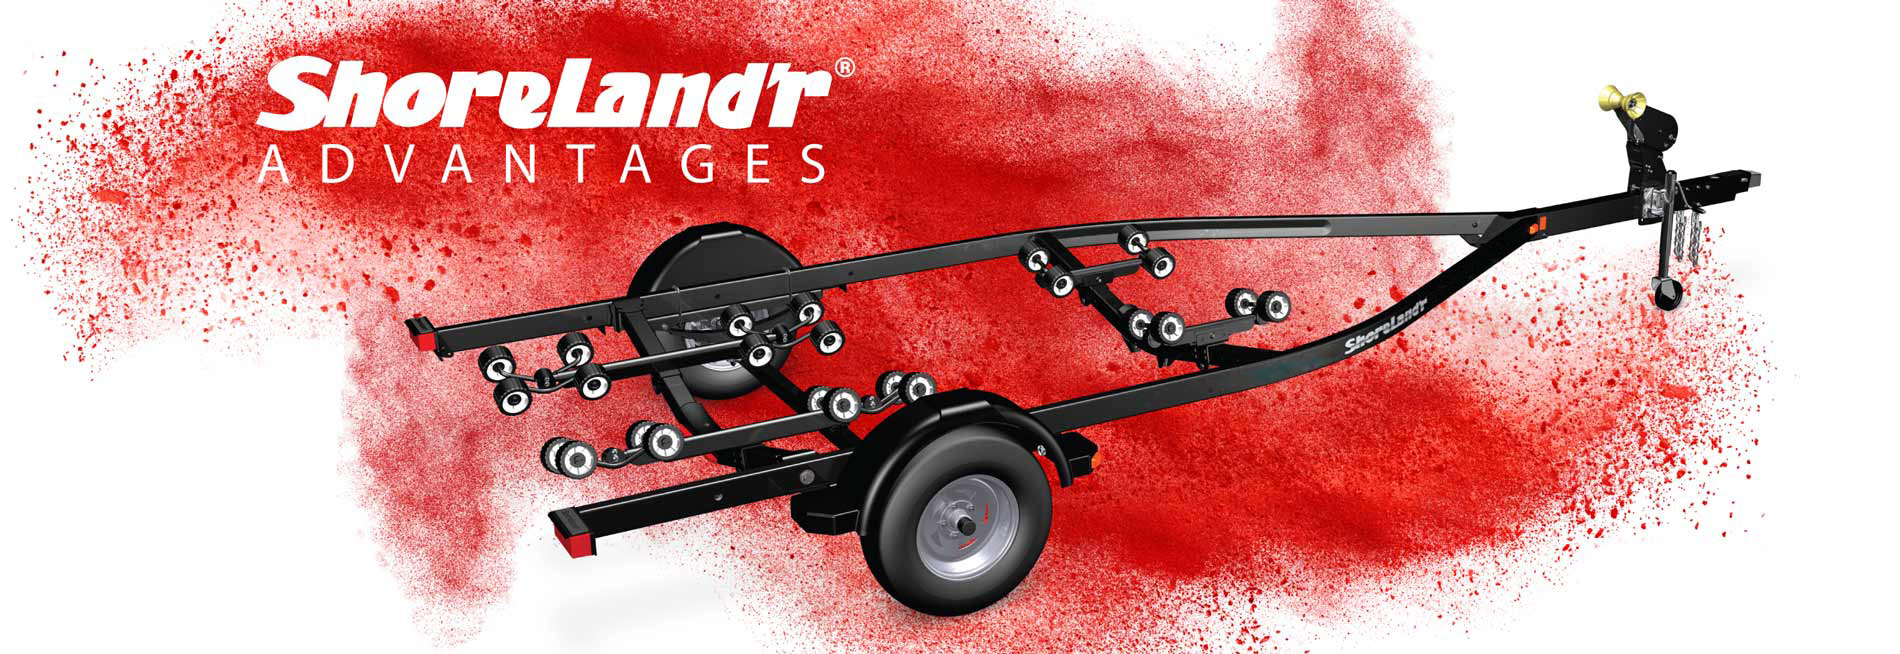 Boat Trailers Shorelandr Advantage Trailer Lights Are Easy To Understand And Change Header